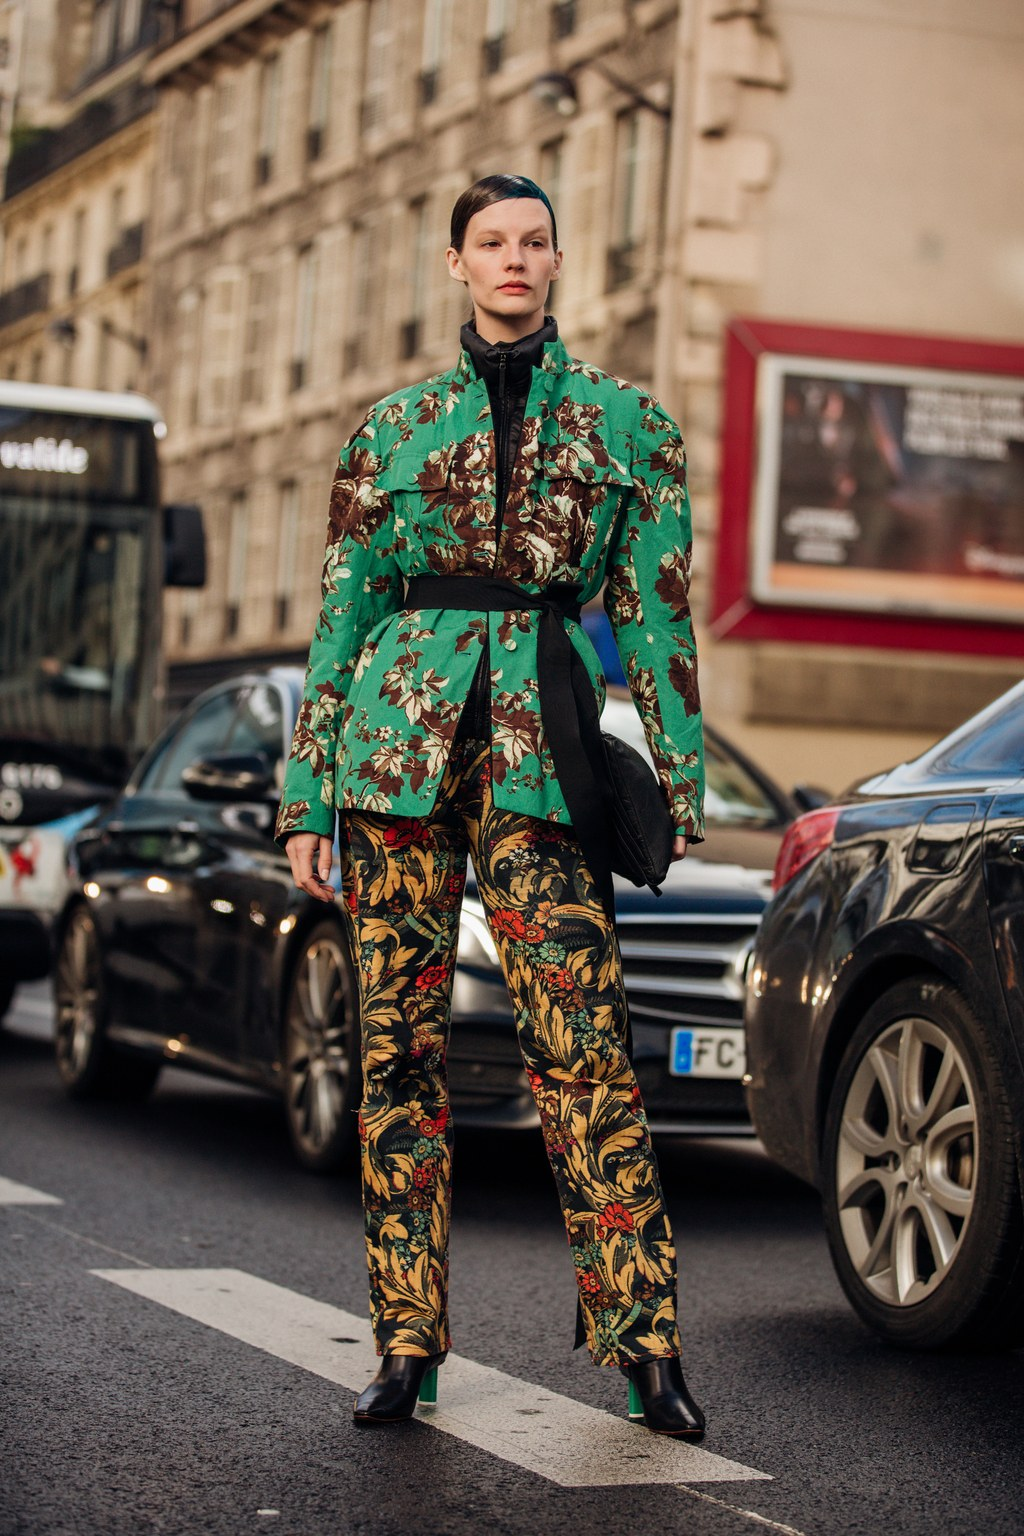 Street Style Tips From Paris Fashion Week 2020 paris fashion week 2020 Street Style Tips From Paris Fashion Week 2020 00005PARIS DAY2 Vogueint 26feb20 credit Jonathan Daniel Pryce 038